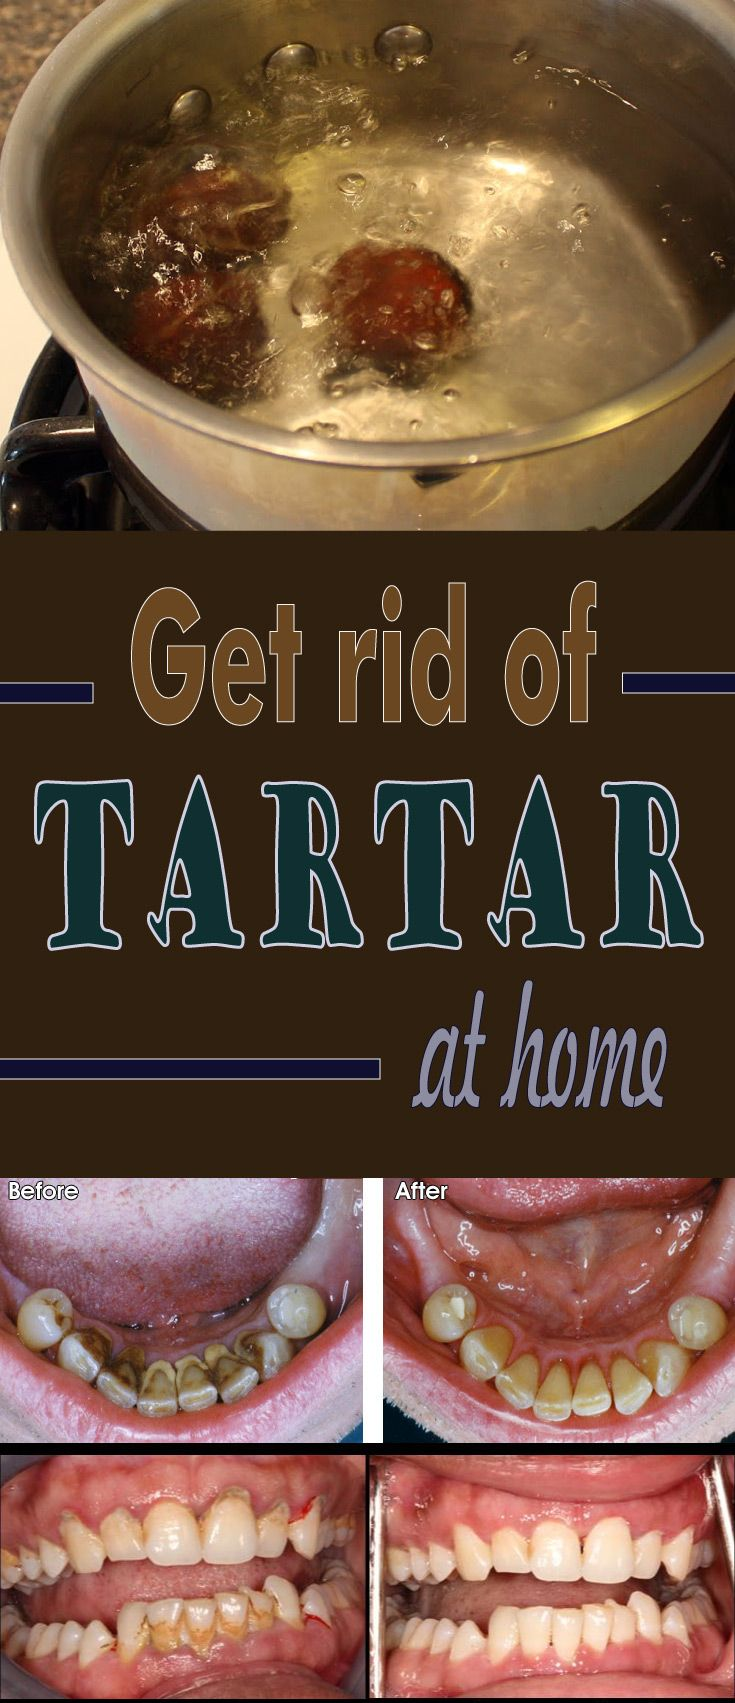 Get rid of tartar at home oral care dental health care